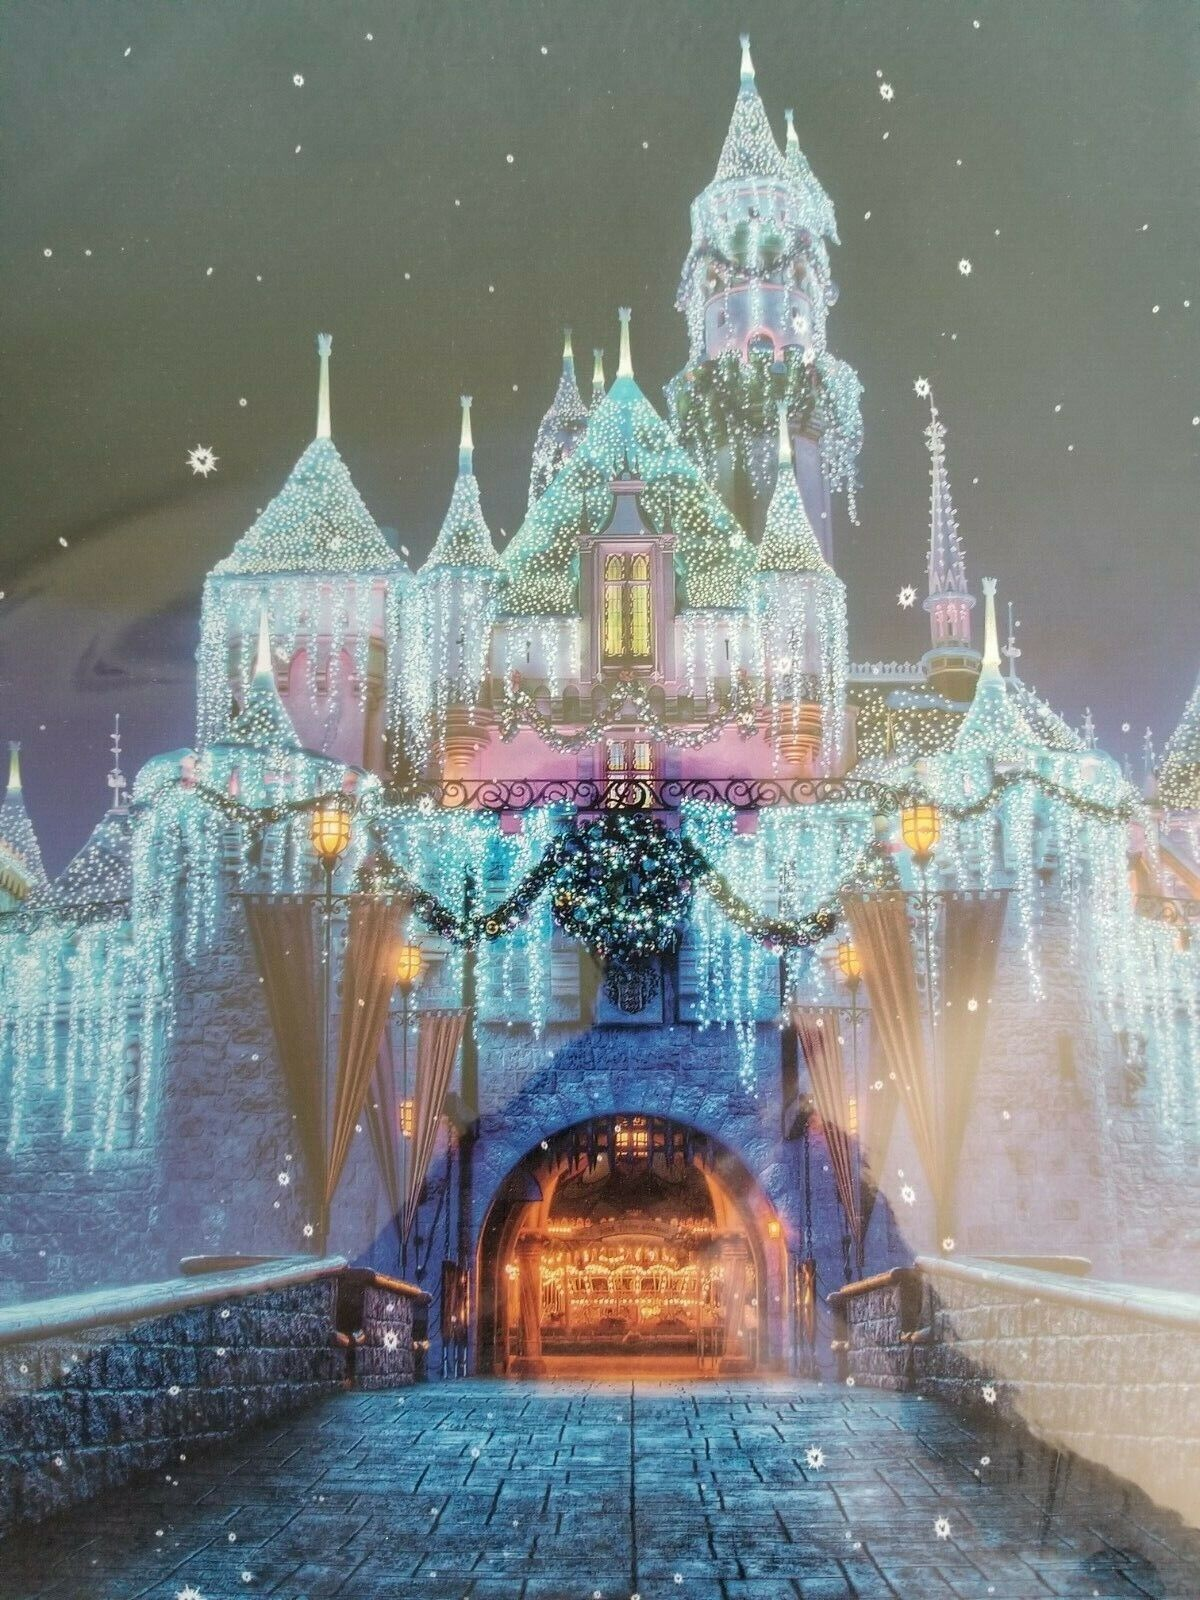 Disneyland Castle At Night 11 By 17 Print - NEW - $9.99